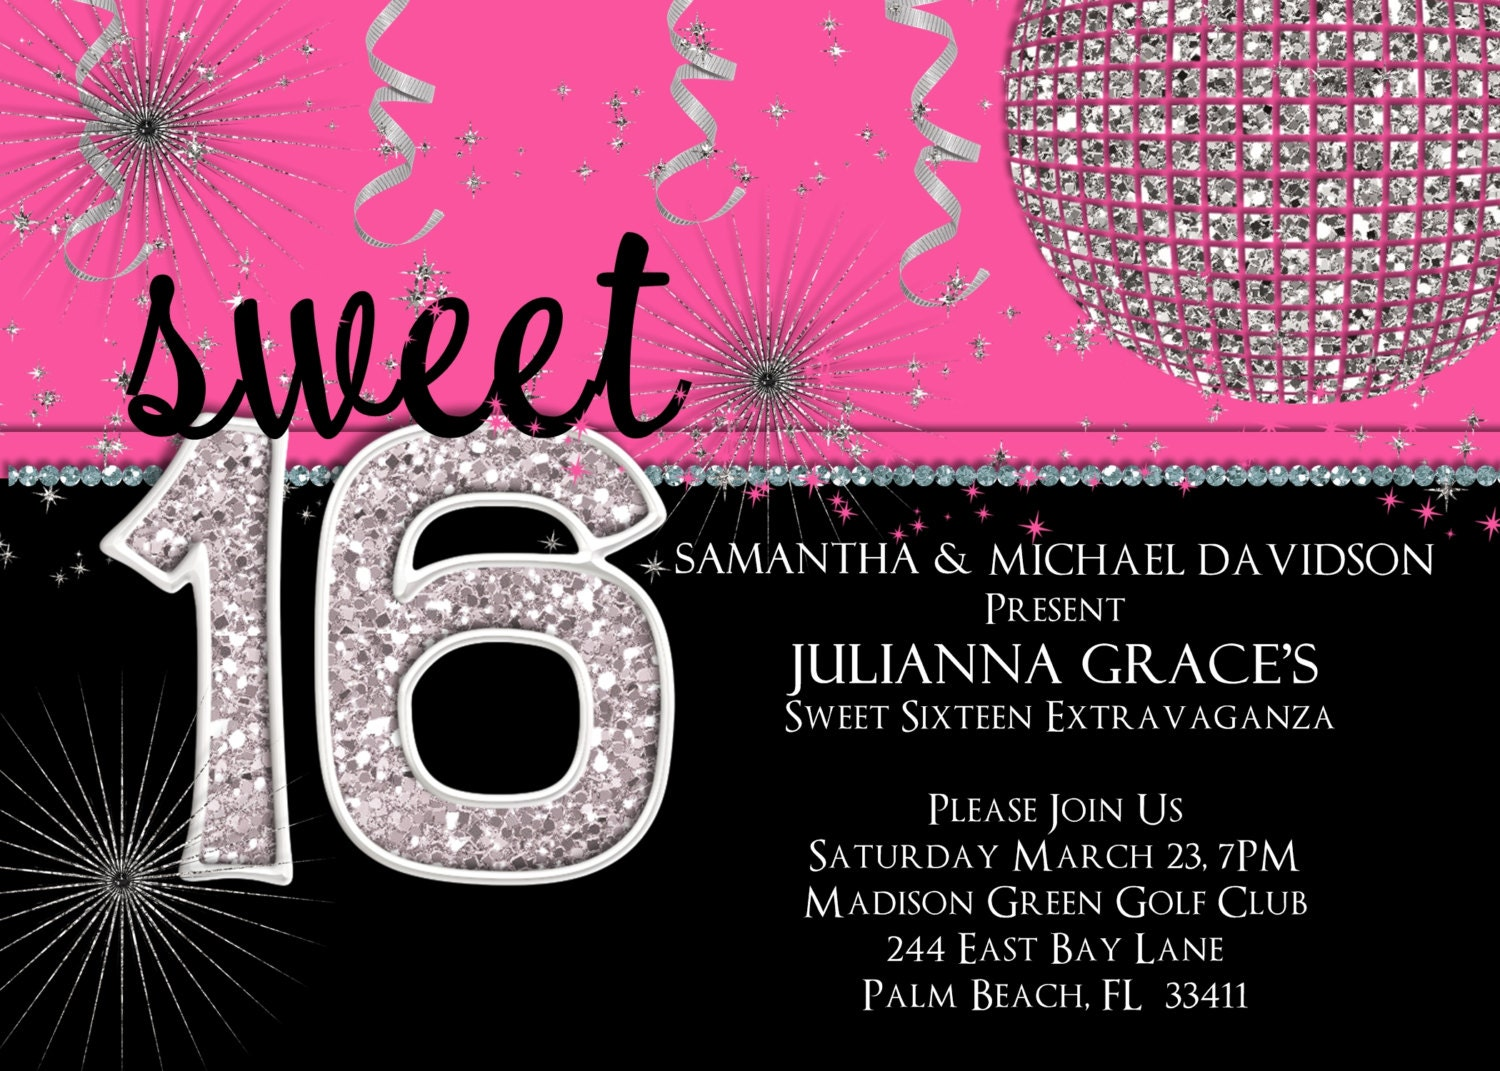 sweet 16 birthday invitation hot pink custom and printable, Birthday invitations